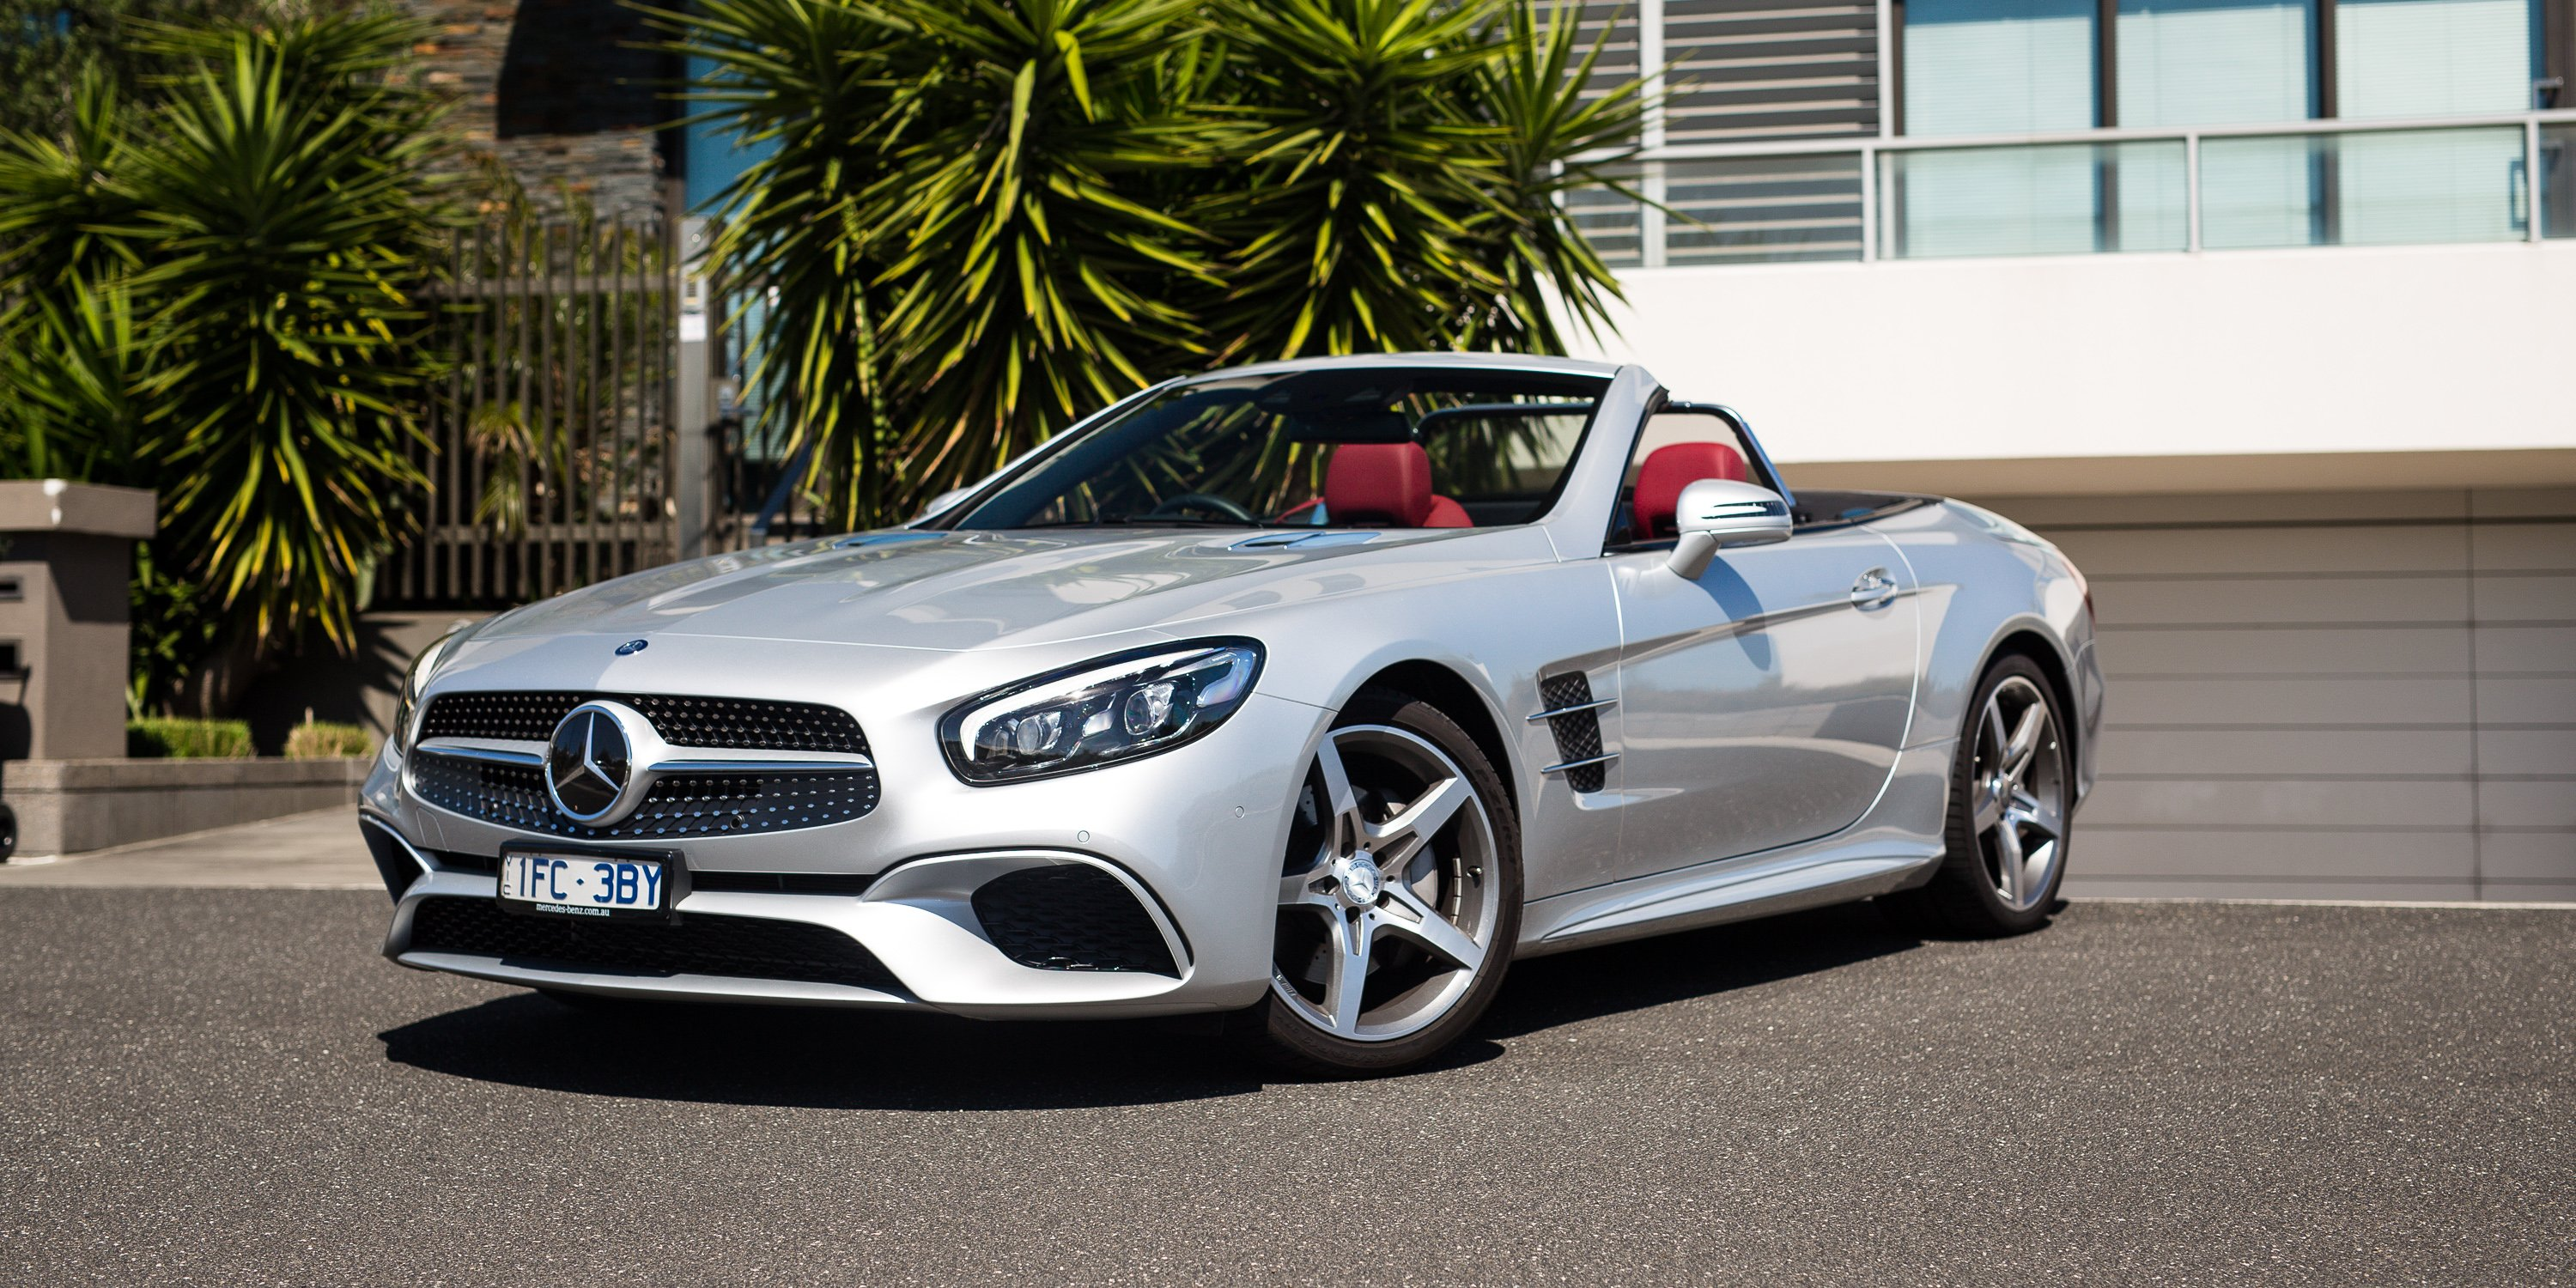 2017 mercedes benz sl400 review caradvice for Mercedes benz 2017